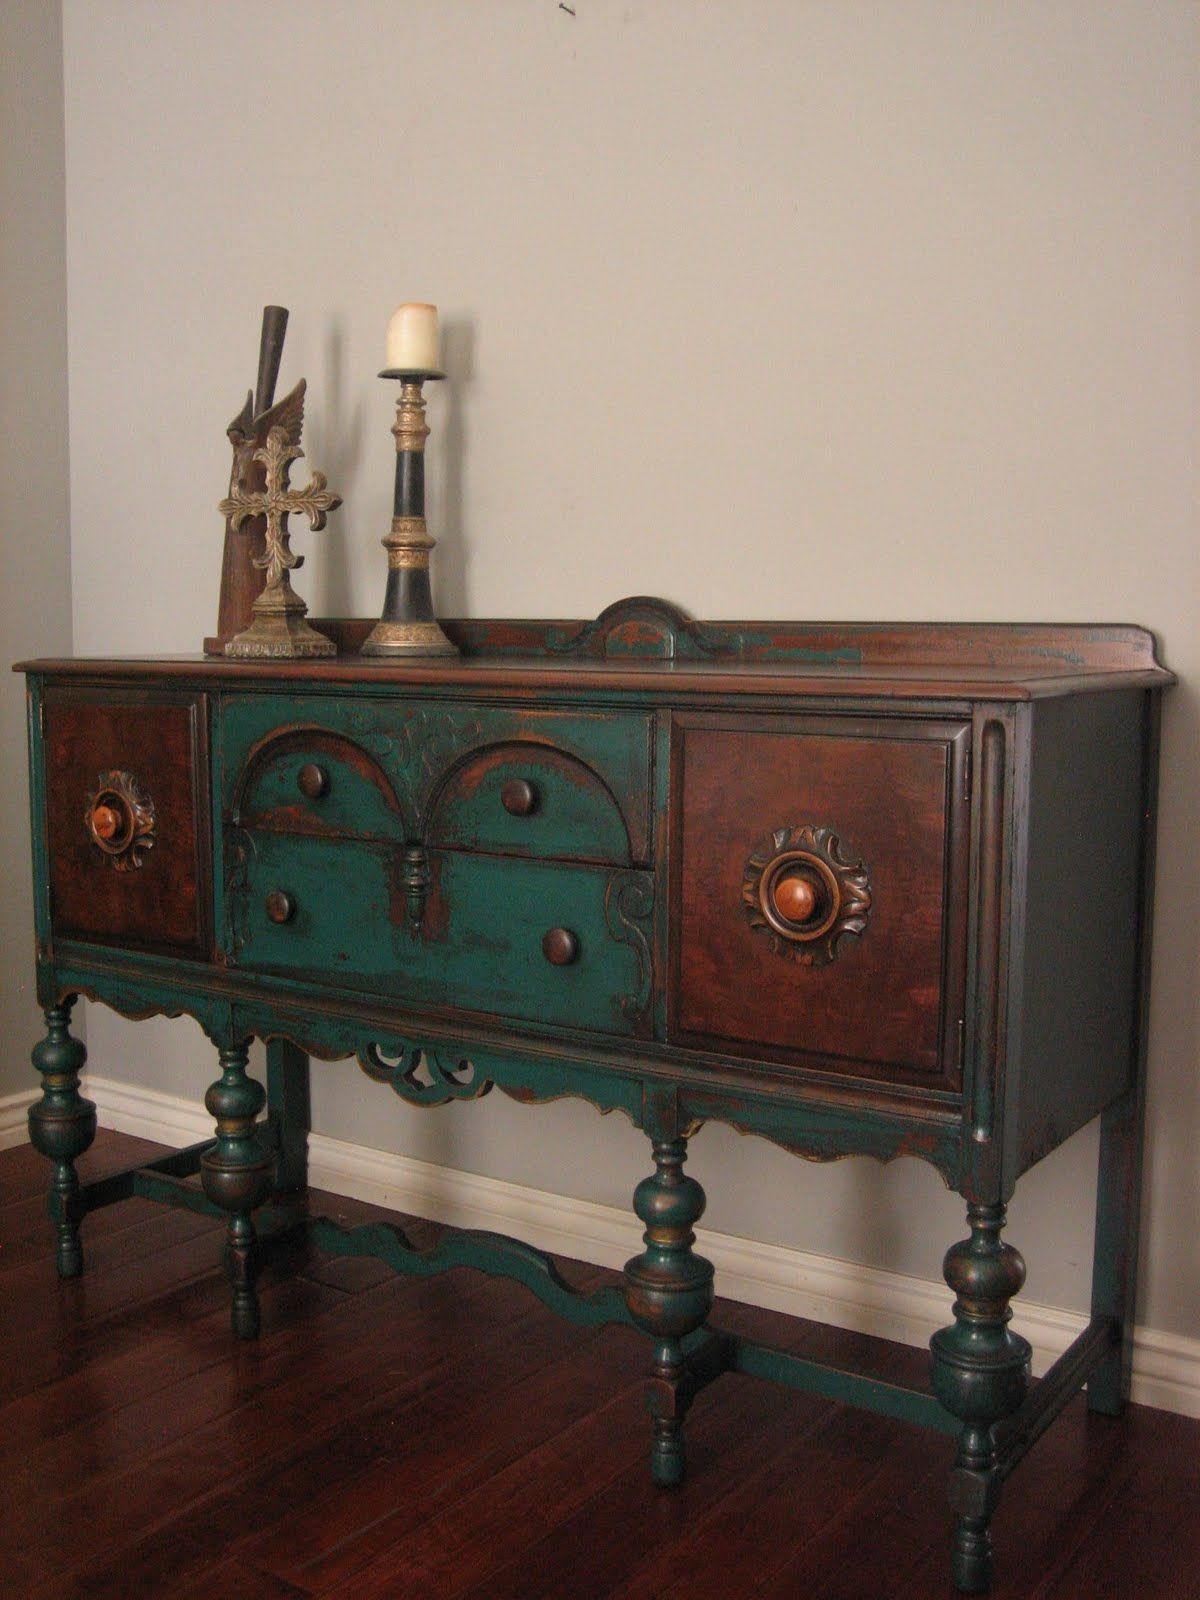 Euro Muebles European Paint Finishes Peacock Green Sideboard Great